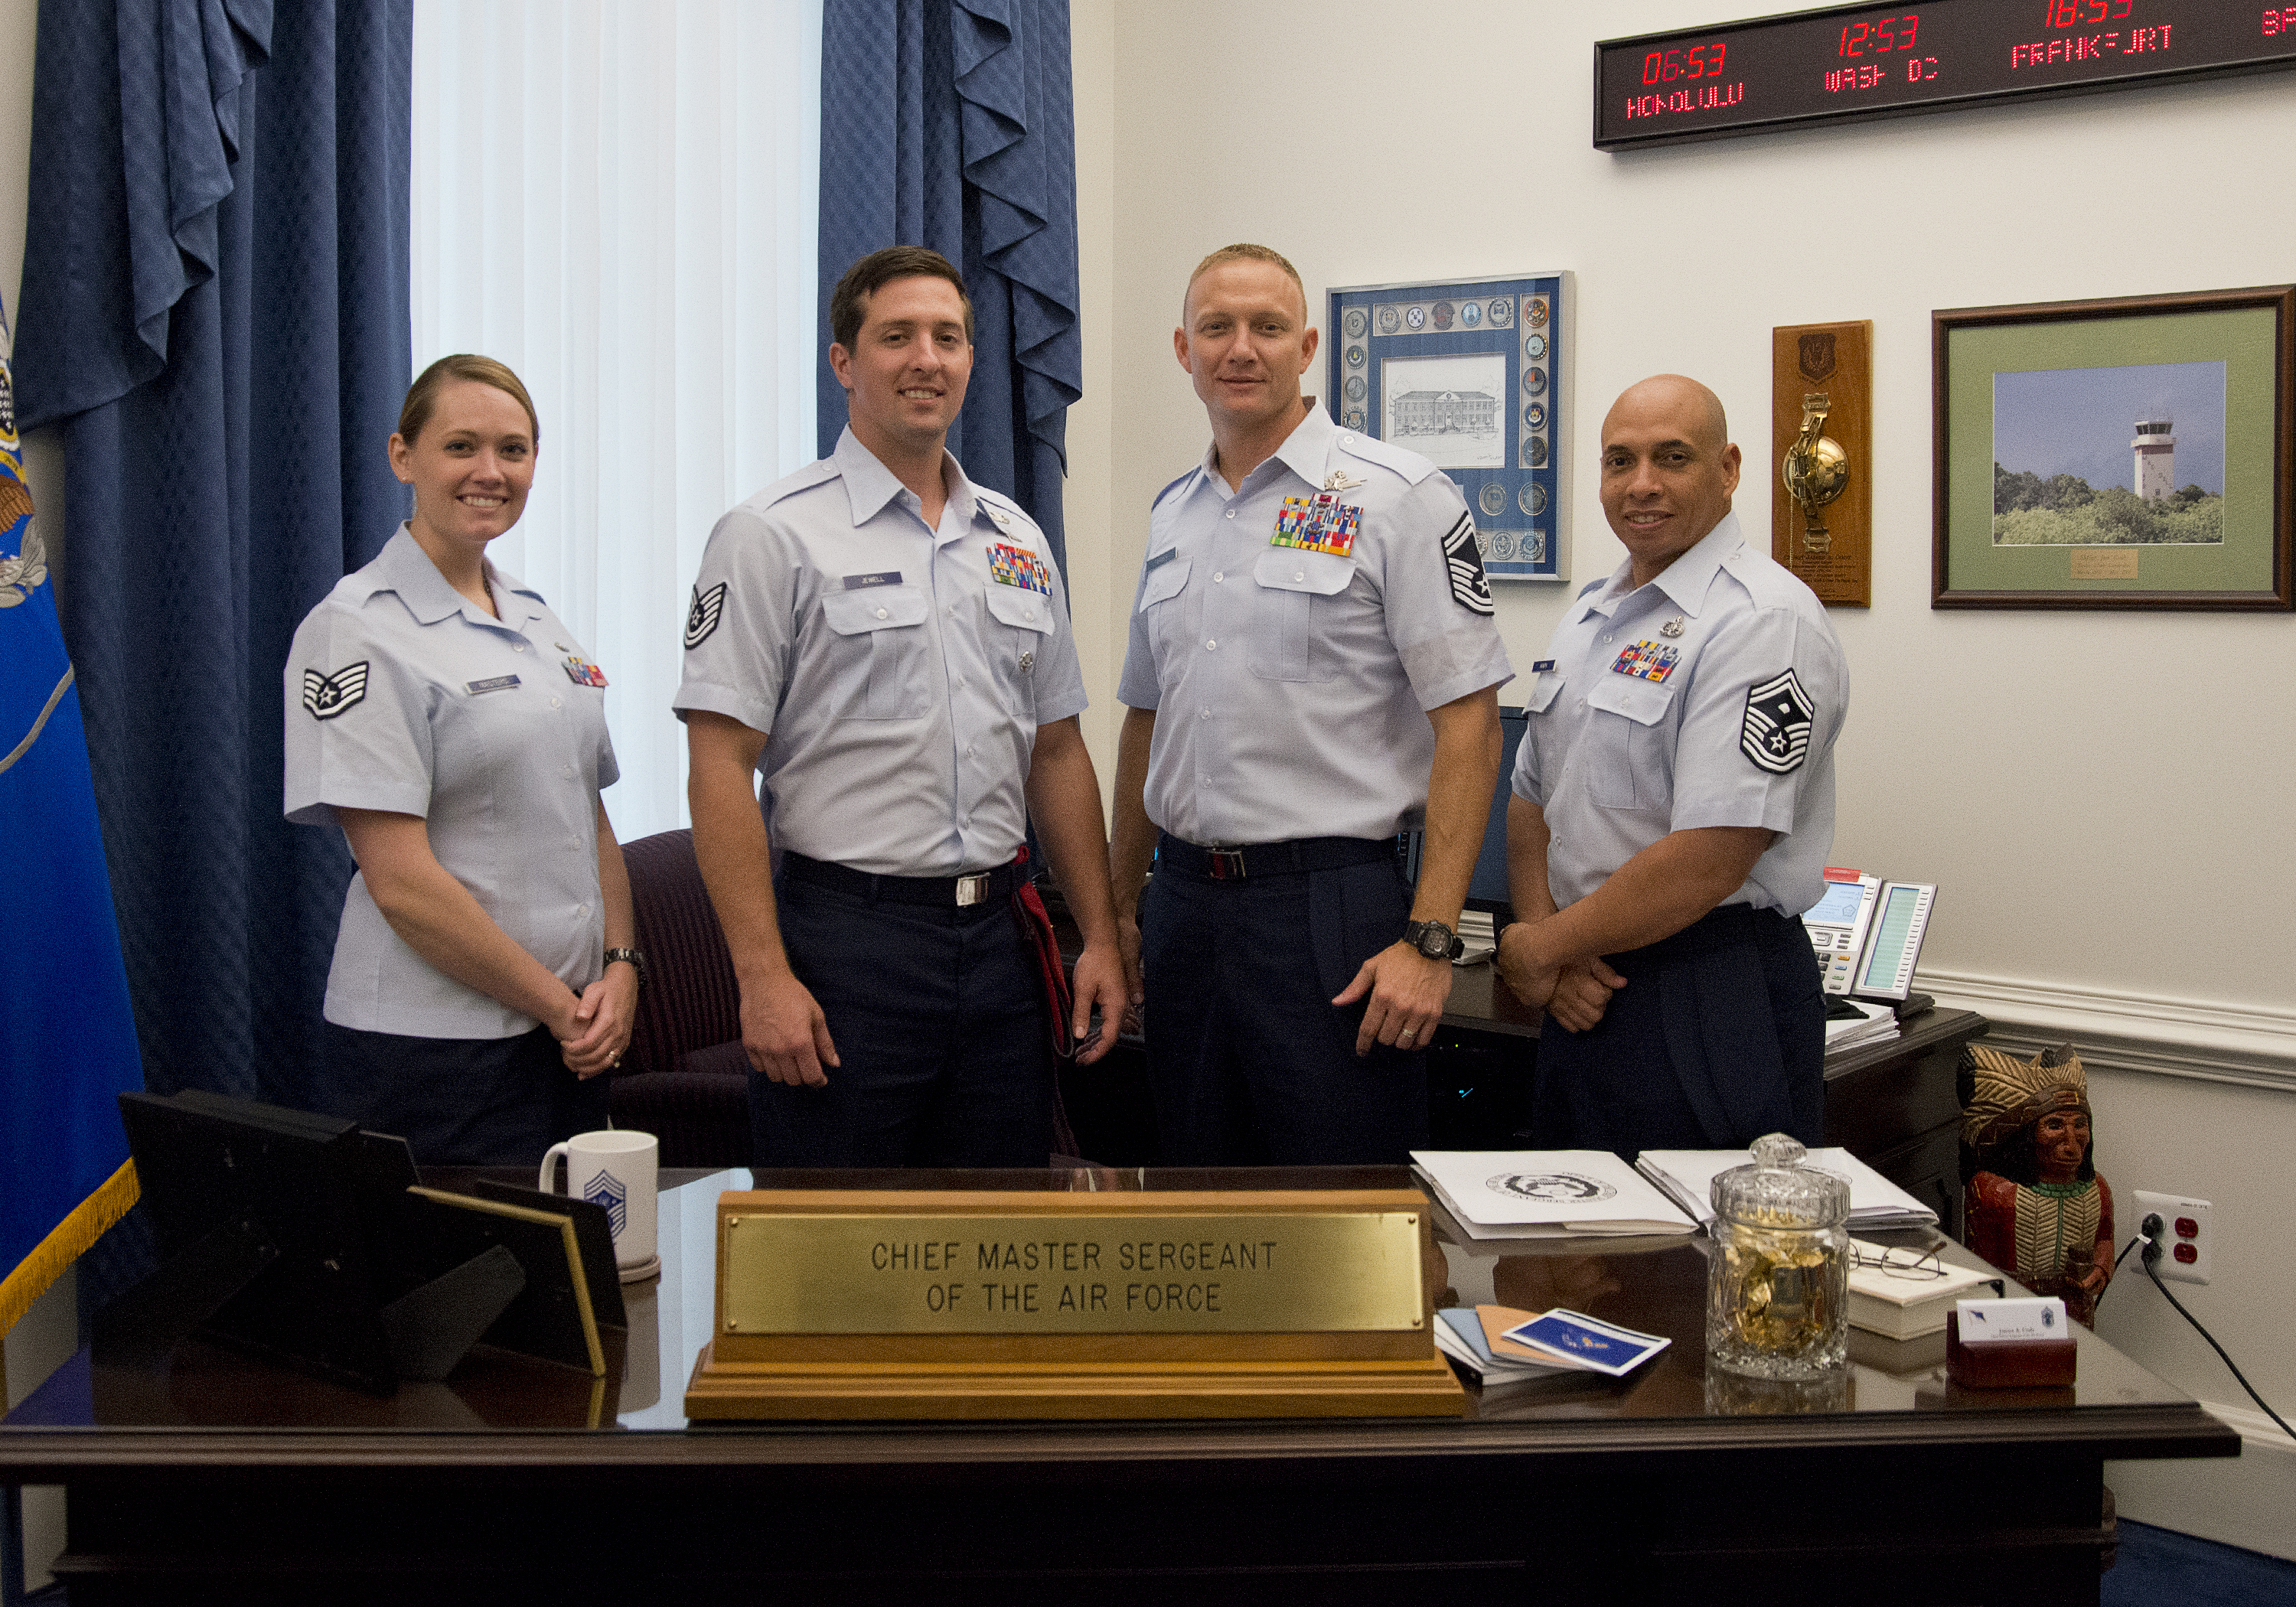 officer dating enlisted in national guard Further, for air guard members, they must be aware of the custom that exists within the air force culture that prohibits inappropriate association between officers and enlisted airmen these customs include the widely understood prohibition against officers dating enlisted personnel, whether or not they are in a command or supervisory position.